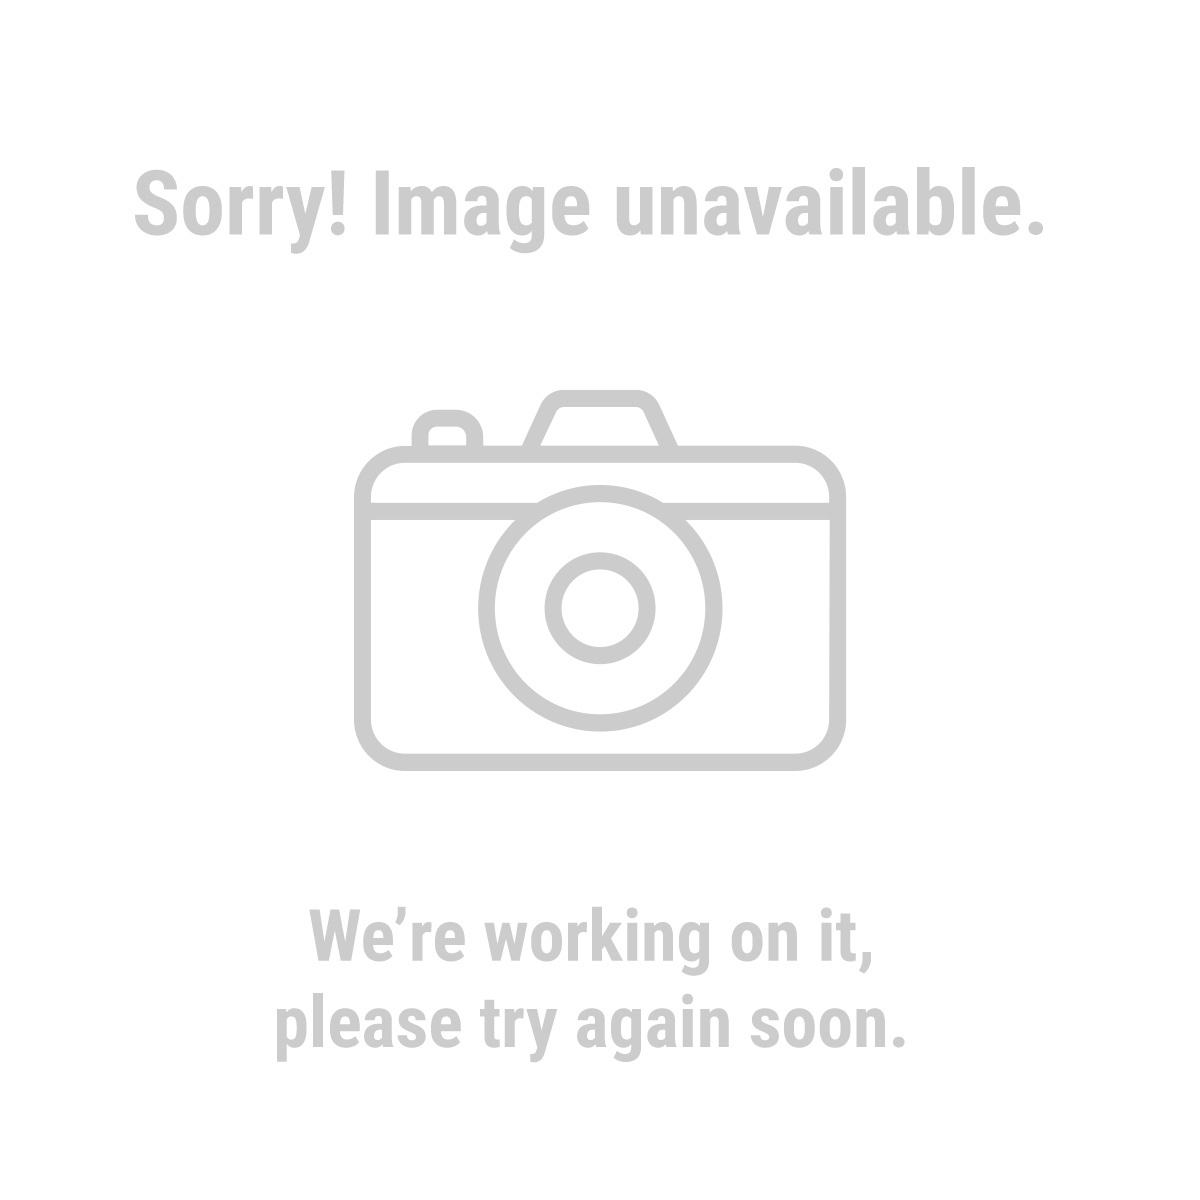 12,000 lbs. Heavy Duty Jack Stands